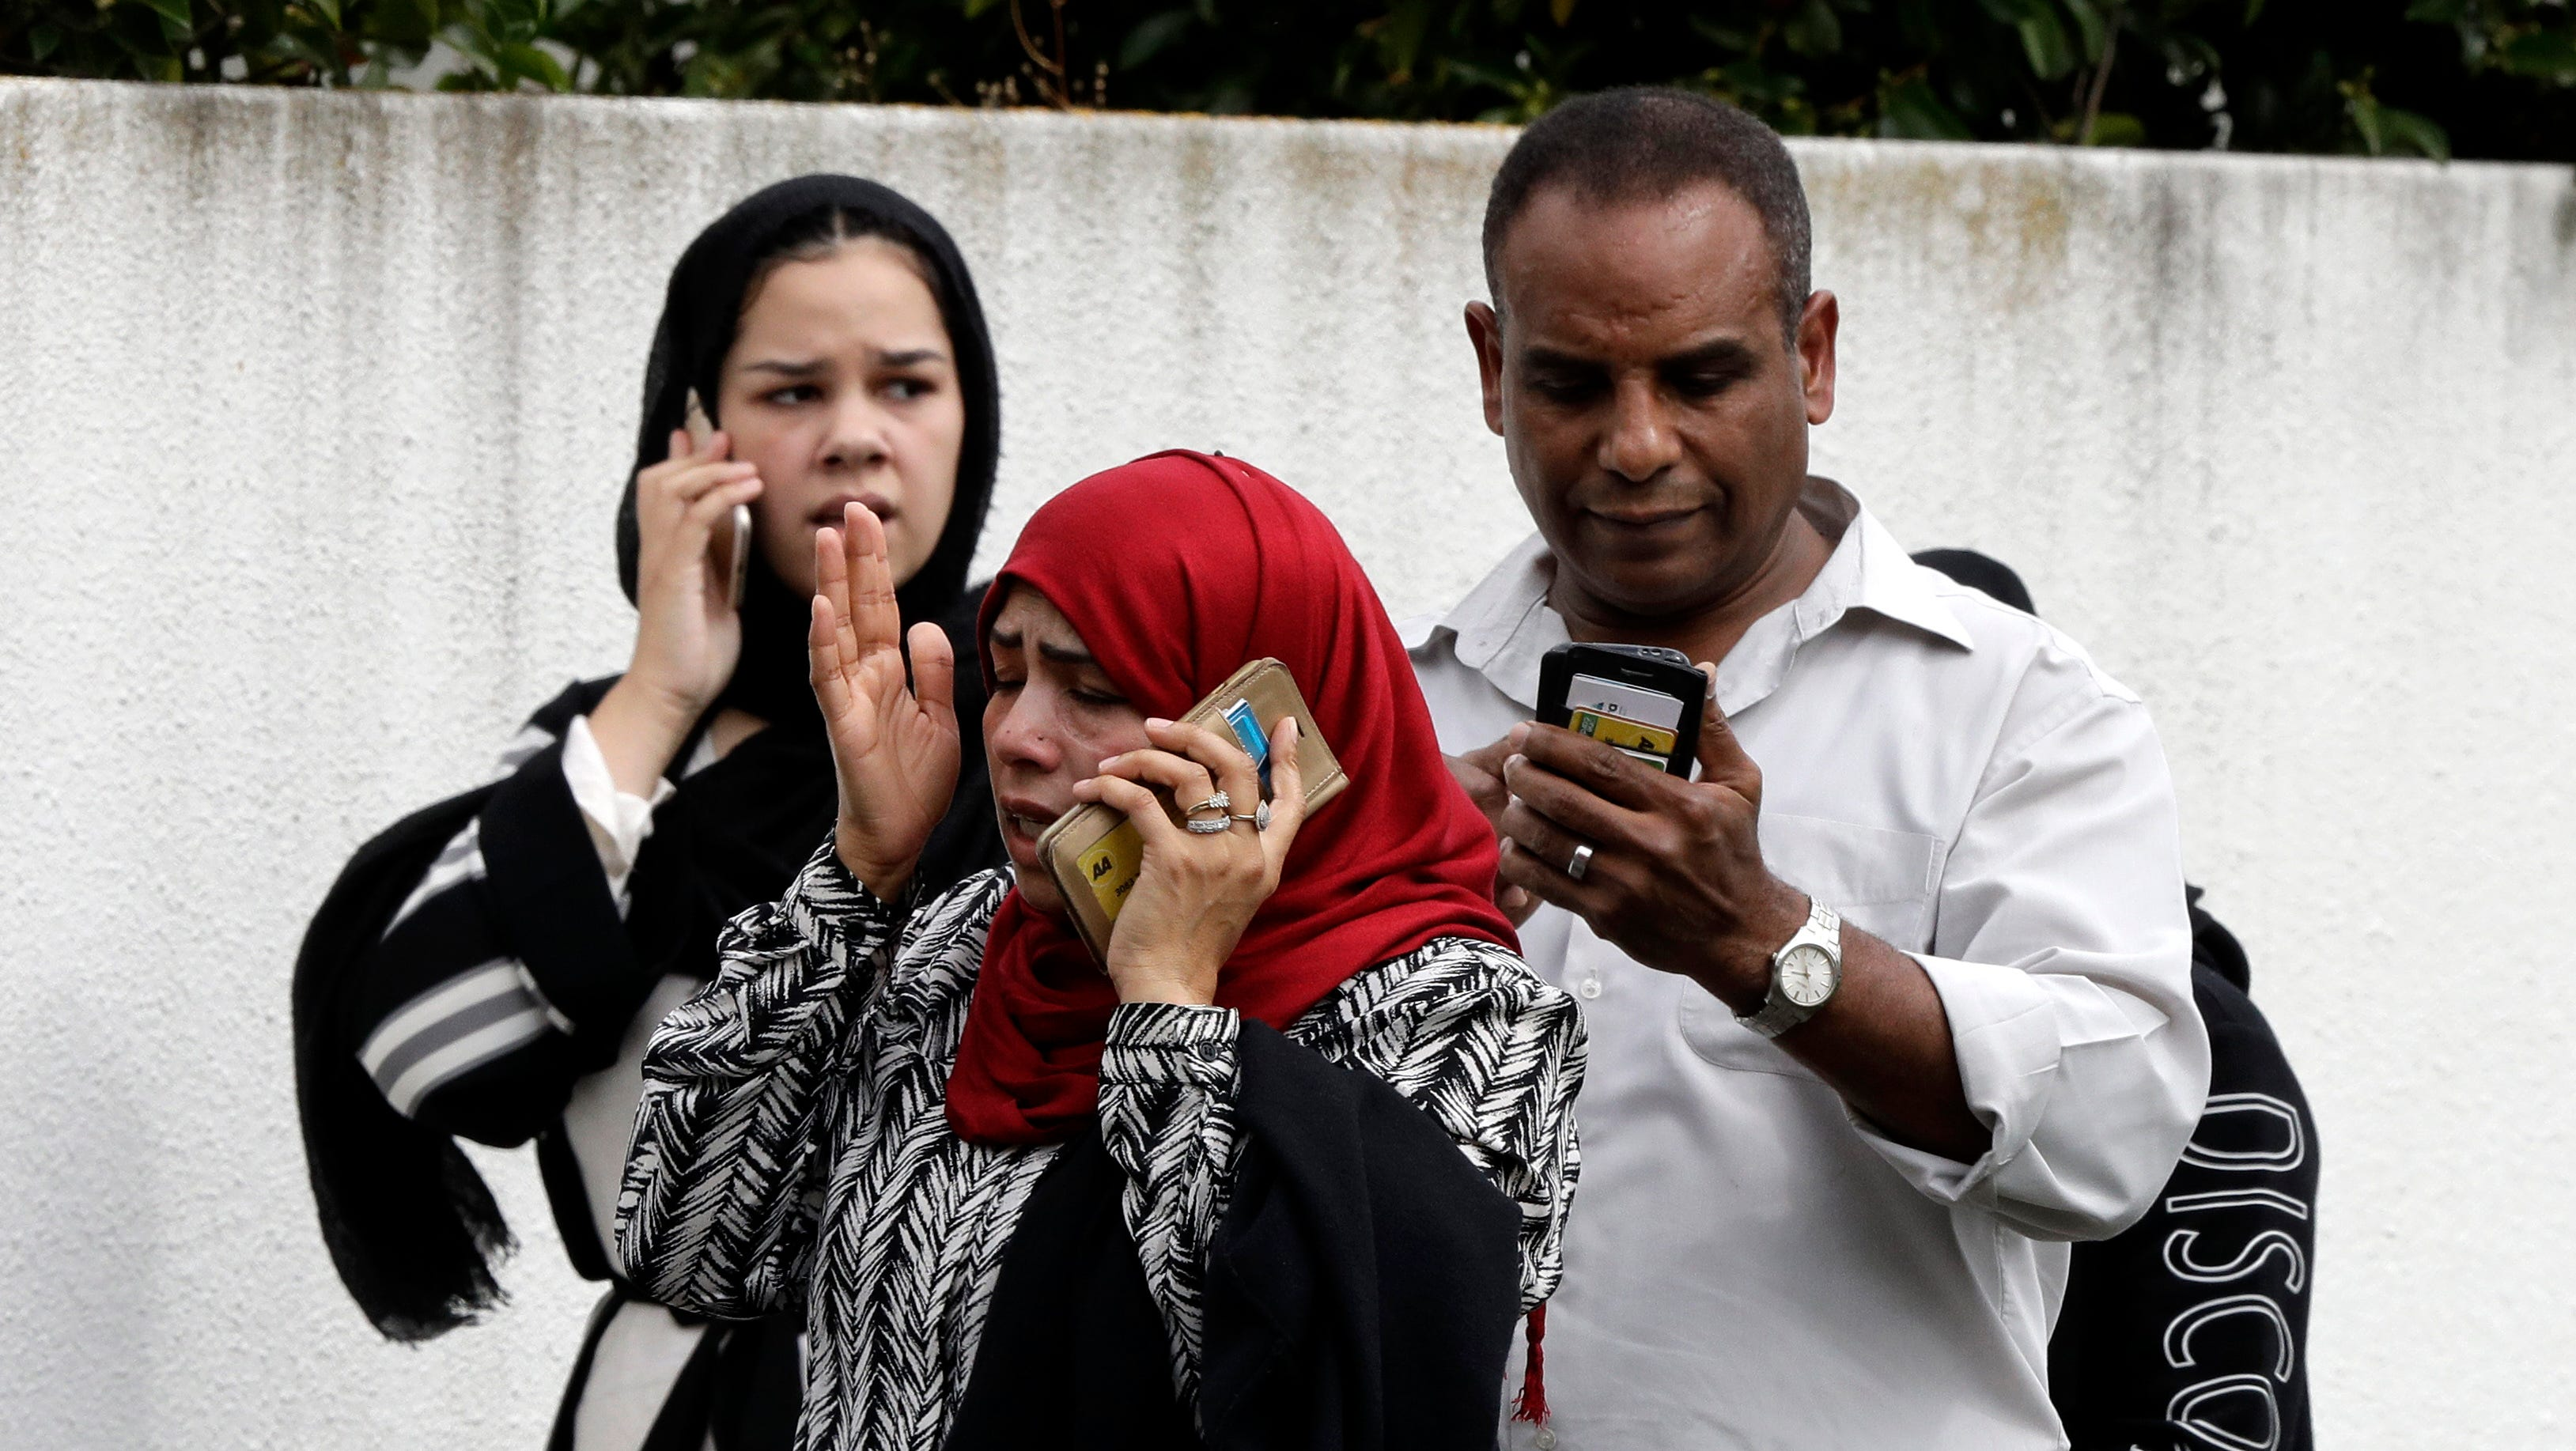 New Zealand Shooting Pinterest: New Zealand Mosque Shootings: 49 Dead, 4 In Custody